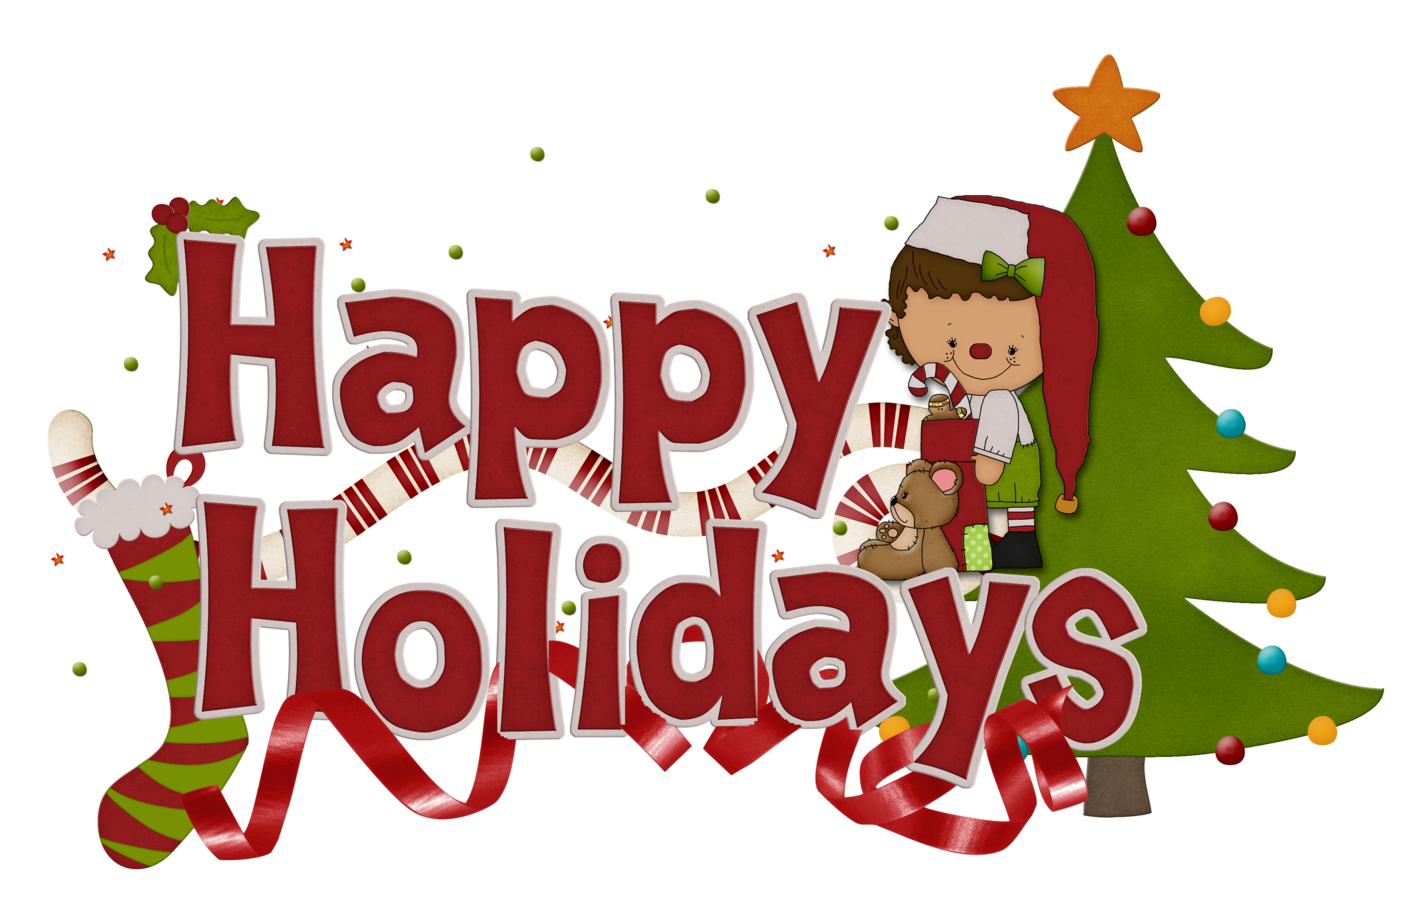 Happy Holidays Clip Art Free-Happy Holidays Clip Art Free-8